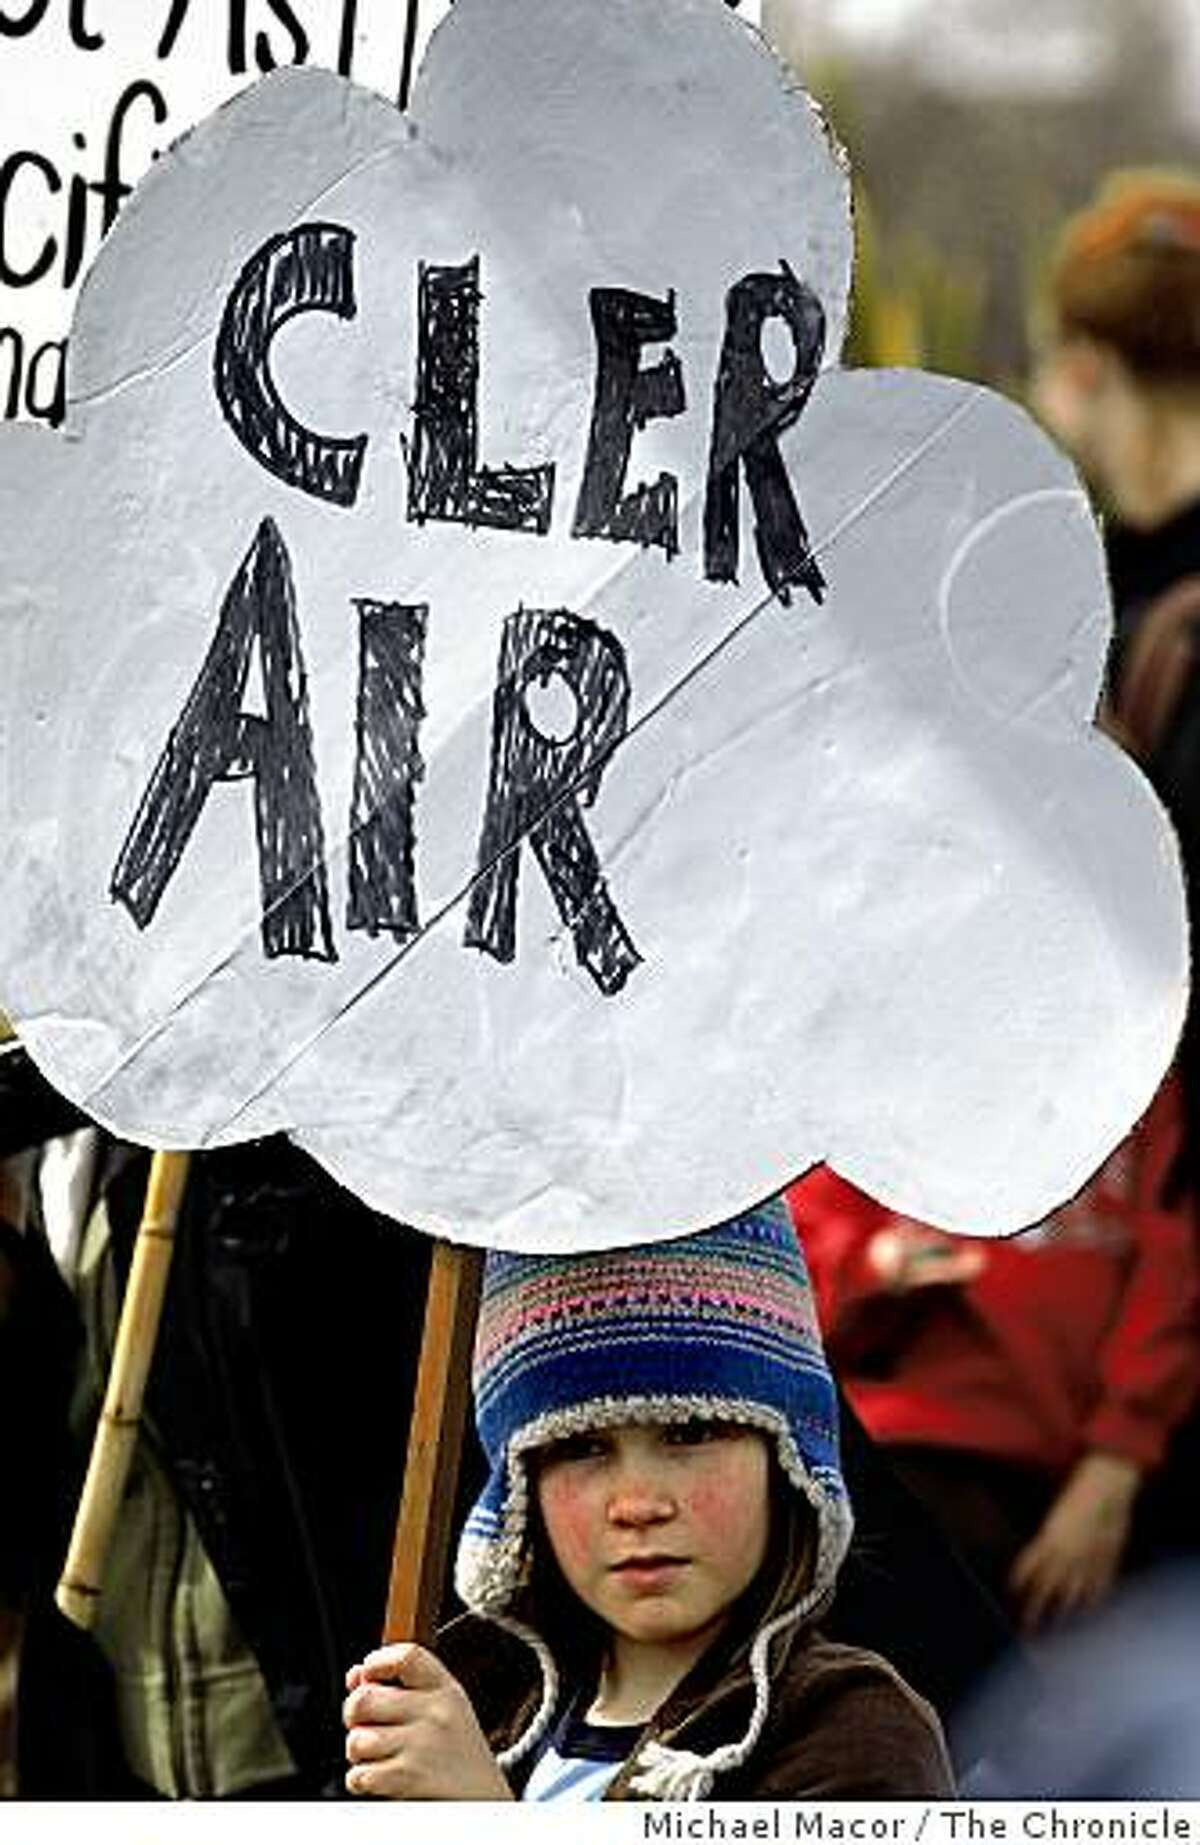 10 year-old Sasha Barish with her homemade sign she carries as she joins residents and local environmentalist at a protest march, on Feb 21, 2009, to Pacific Steel Casting Co., a Berkeley, Calif. firm they accuse of fouling the air and making life in the area unhealthy.